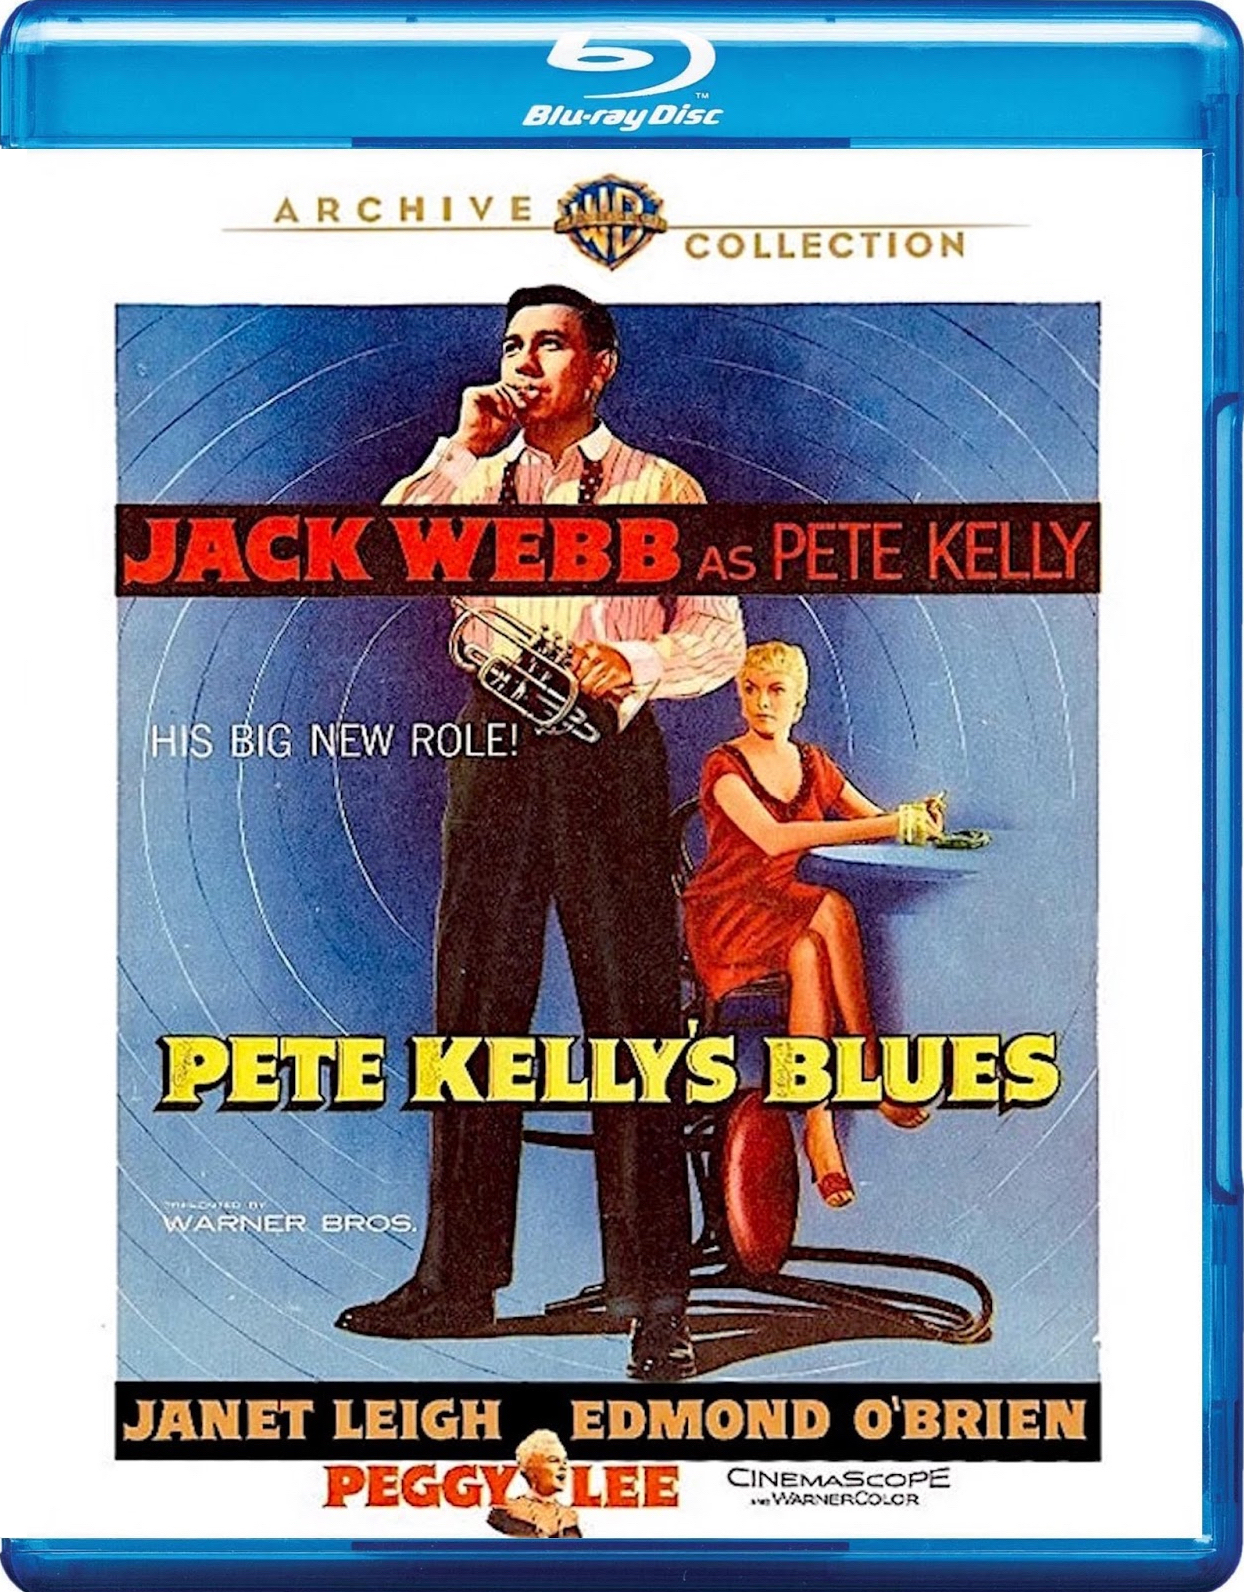 Blu Ray And Dvd Covers Warner Brothers Archive Blu Rays